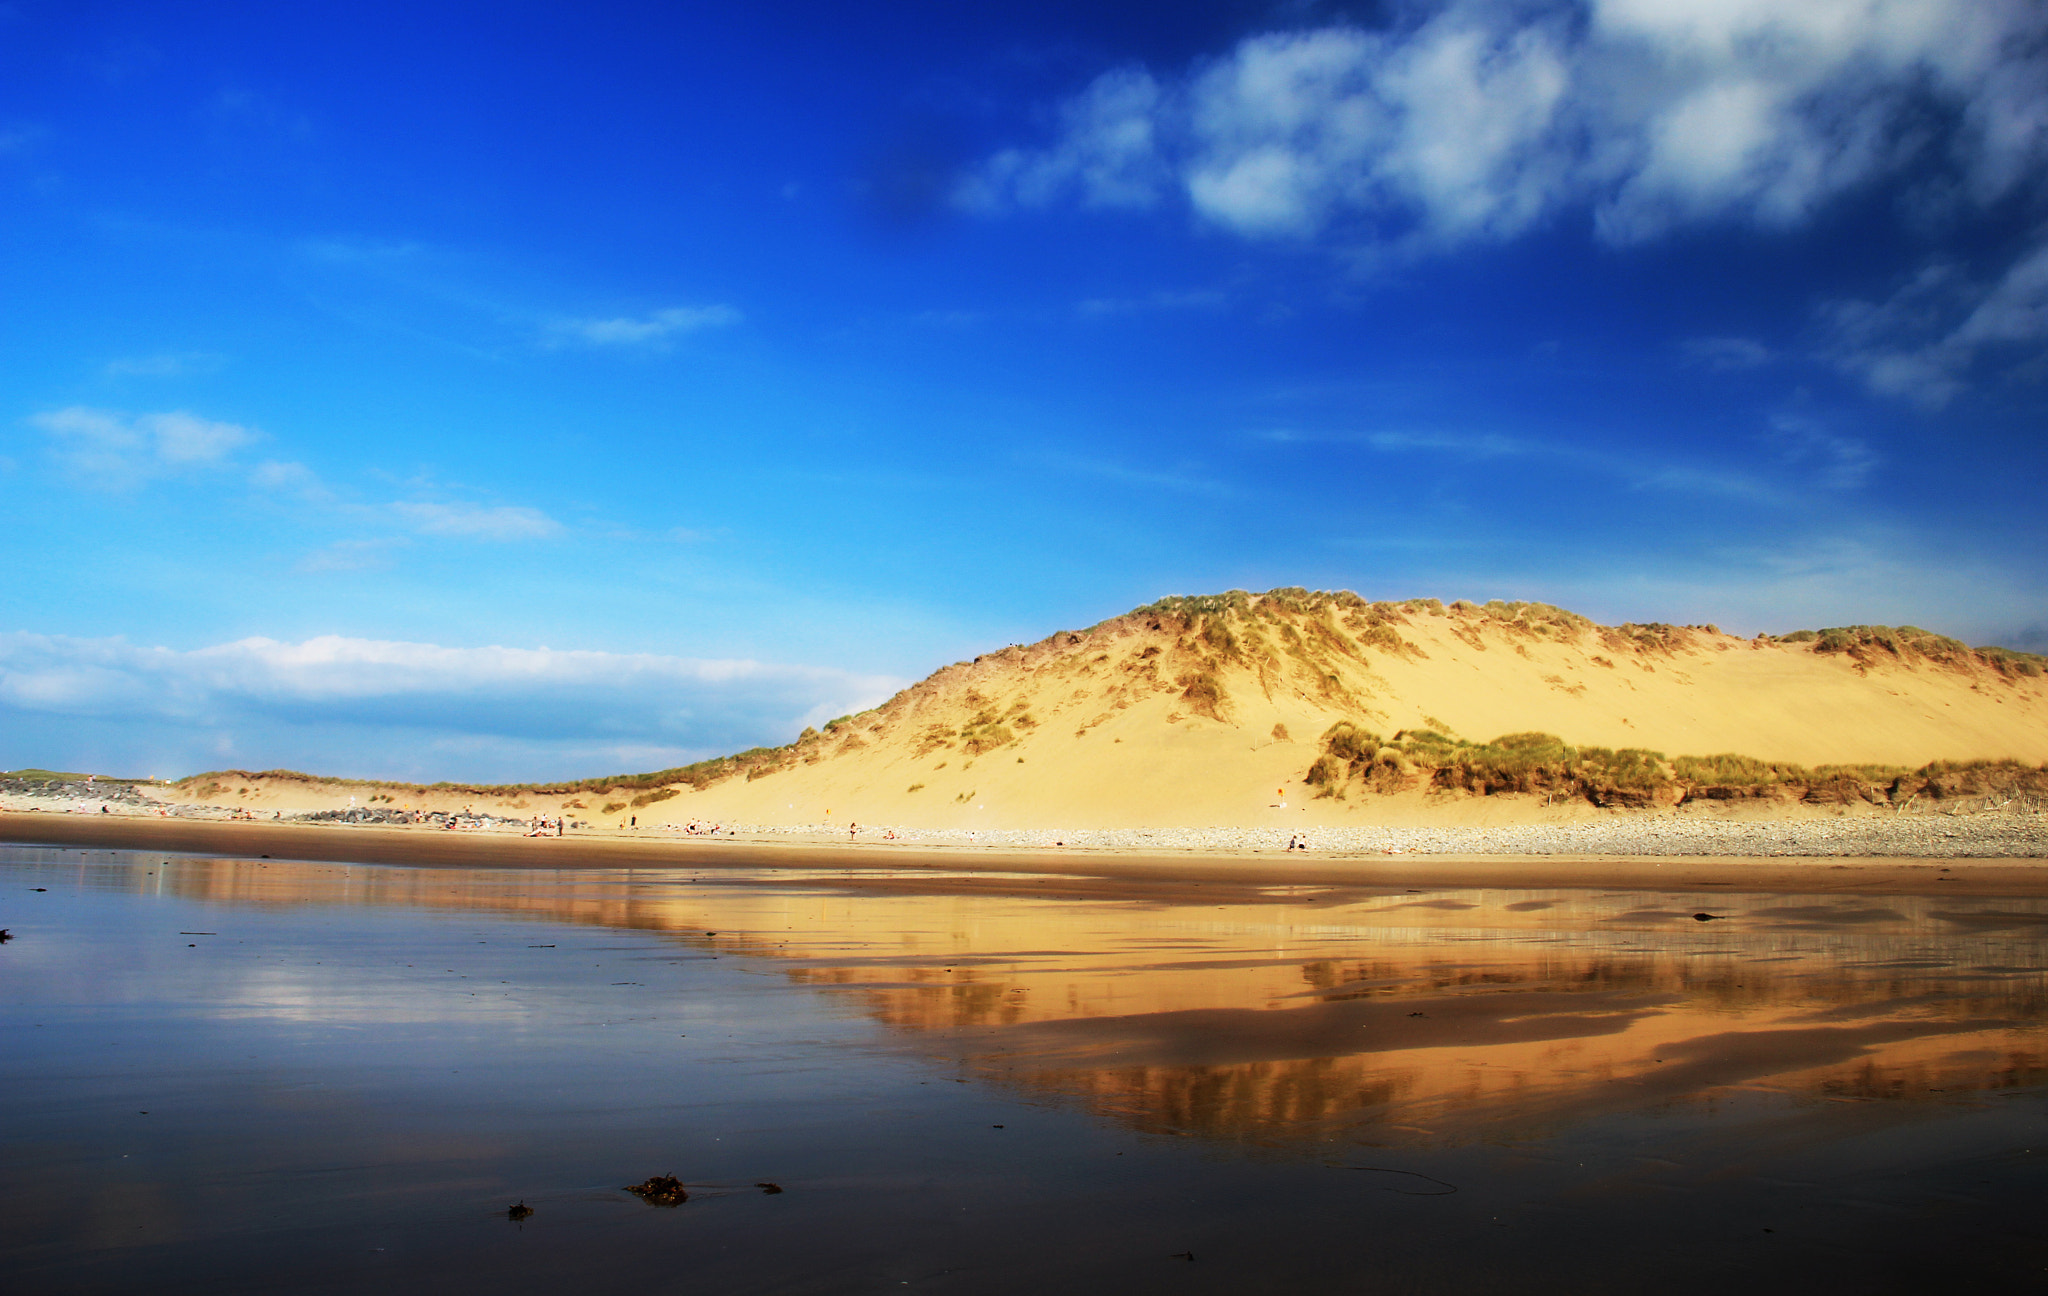 Photograph Dunes reflection by Anne Costello on 500px